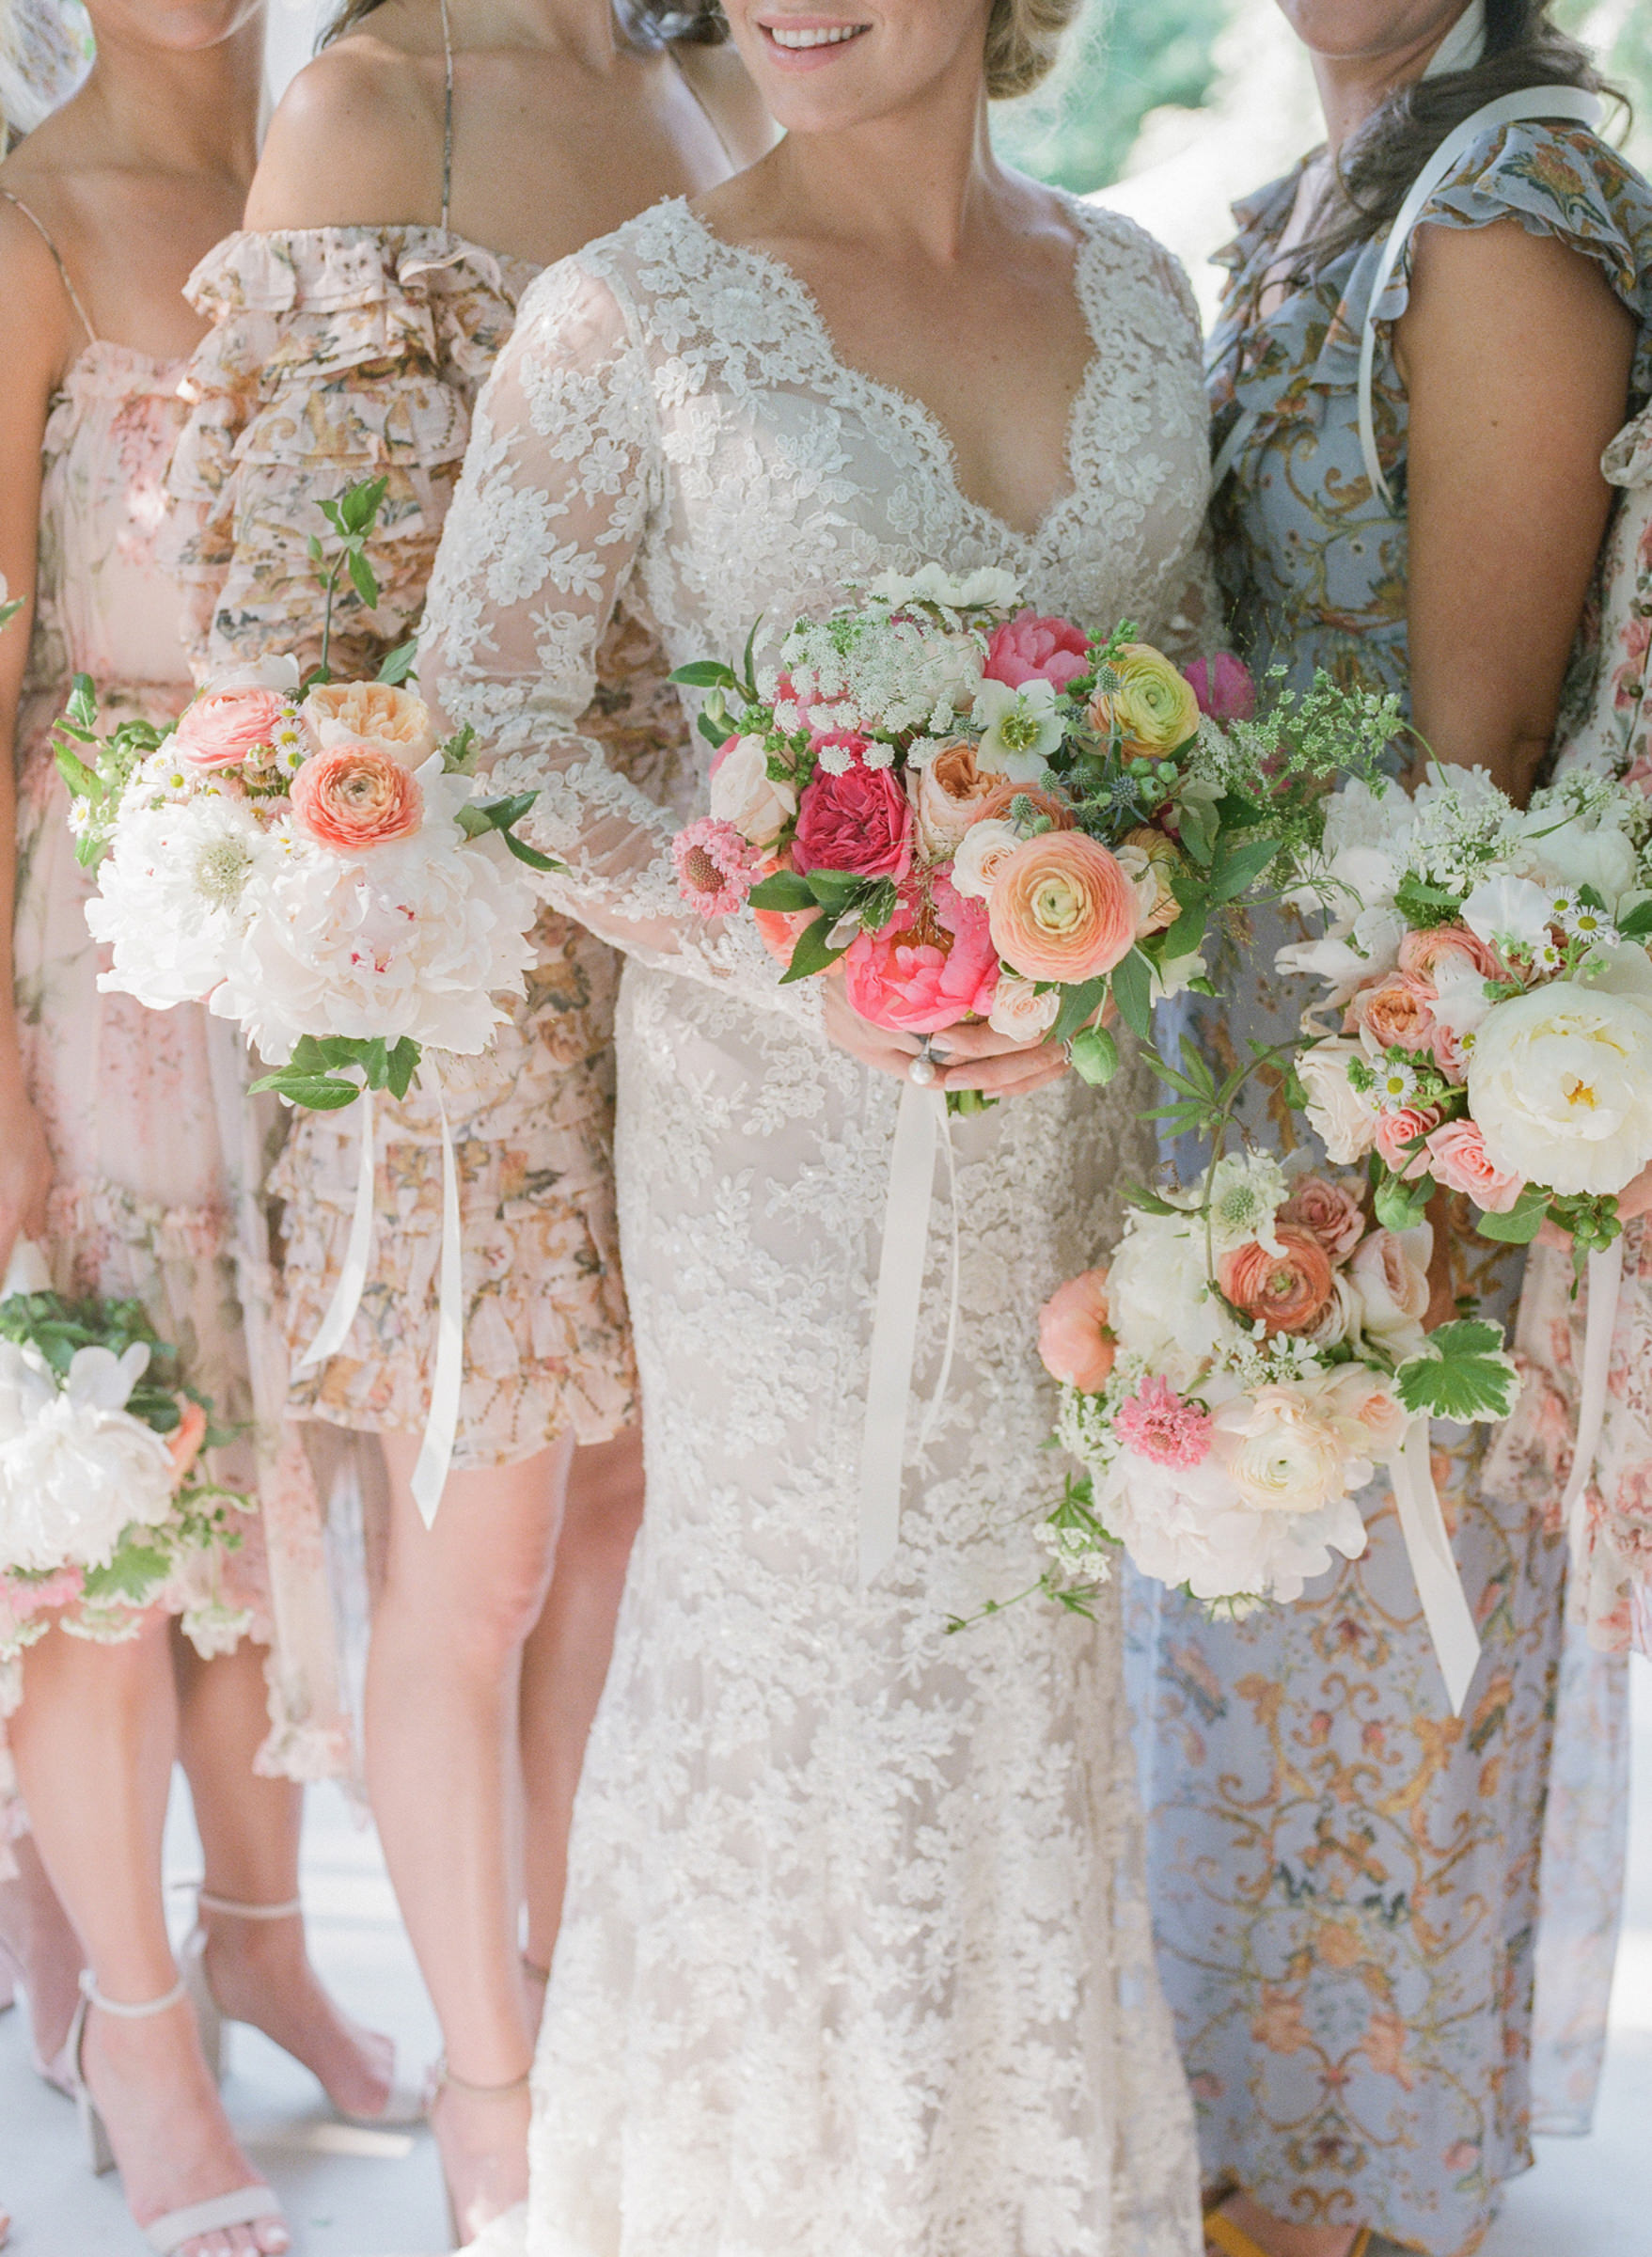 Bride and bridesmaids in lace dresses with spring bouquets  -  photo by Corbin Gurkin